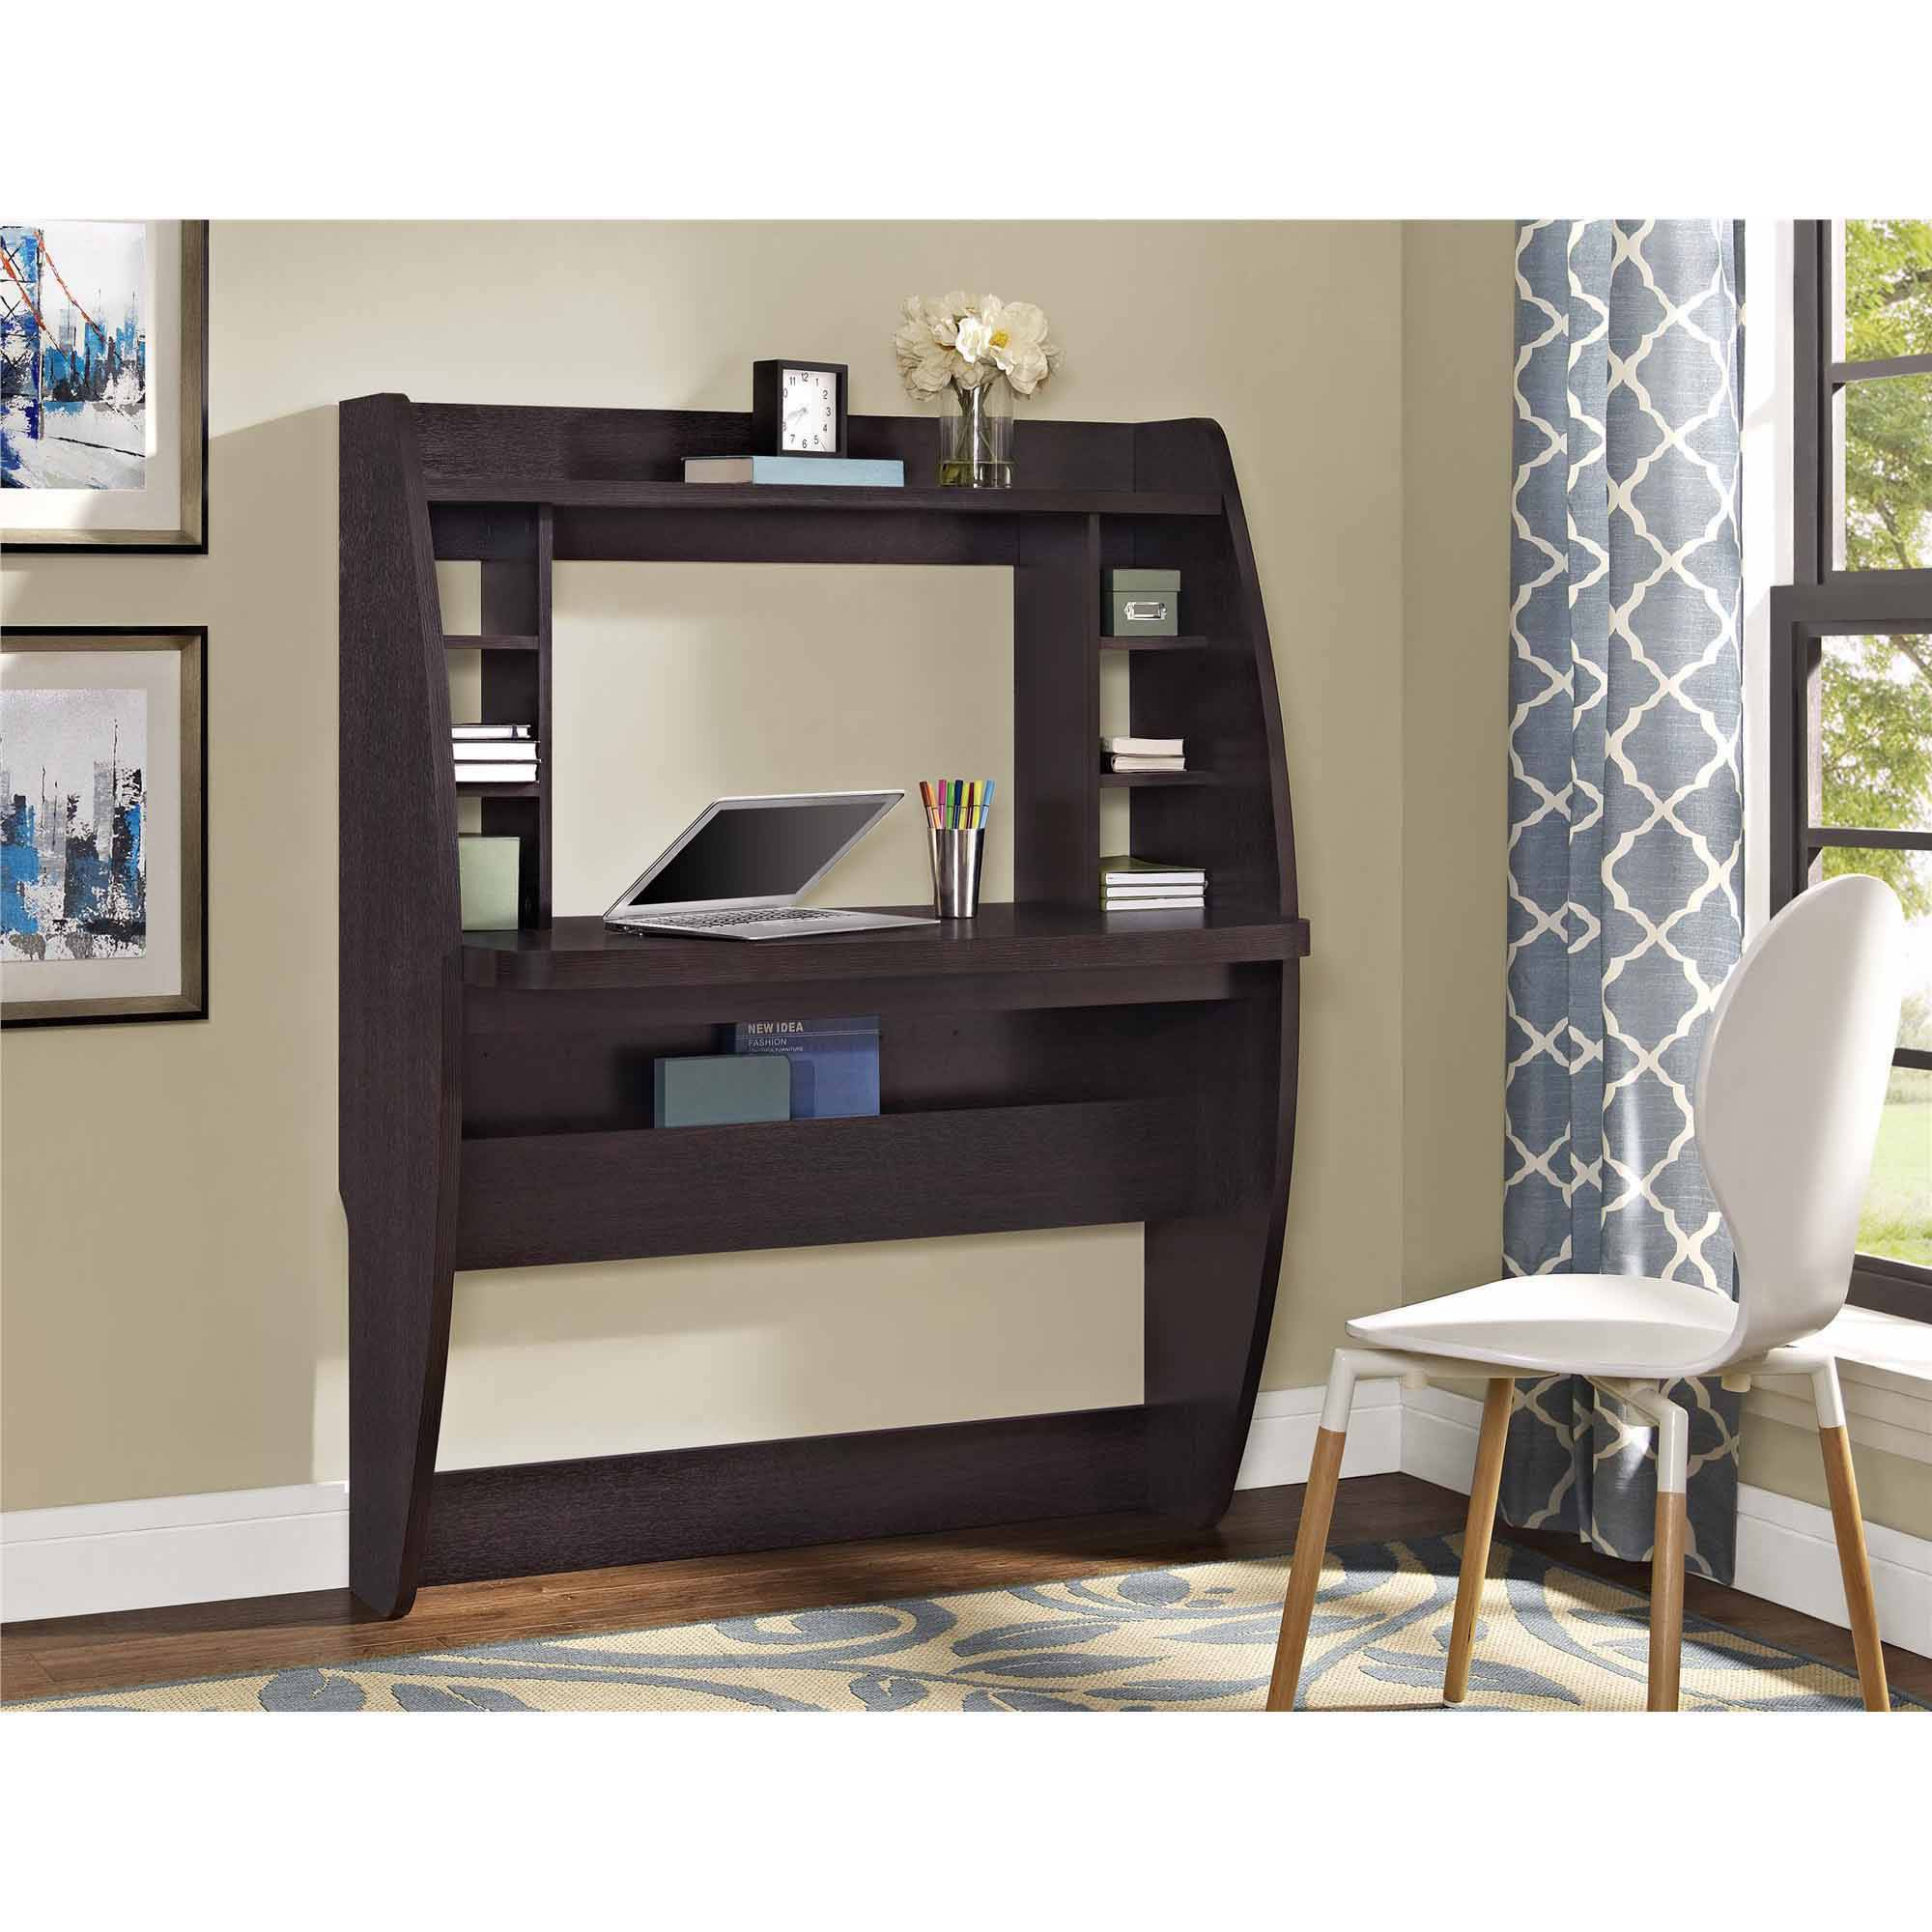 Altra Jace Wall Mounted Desk, Espresso